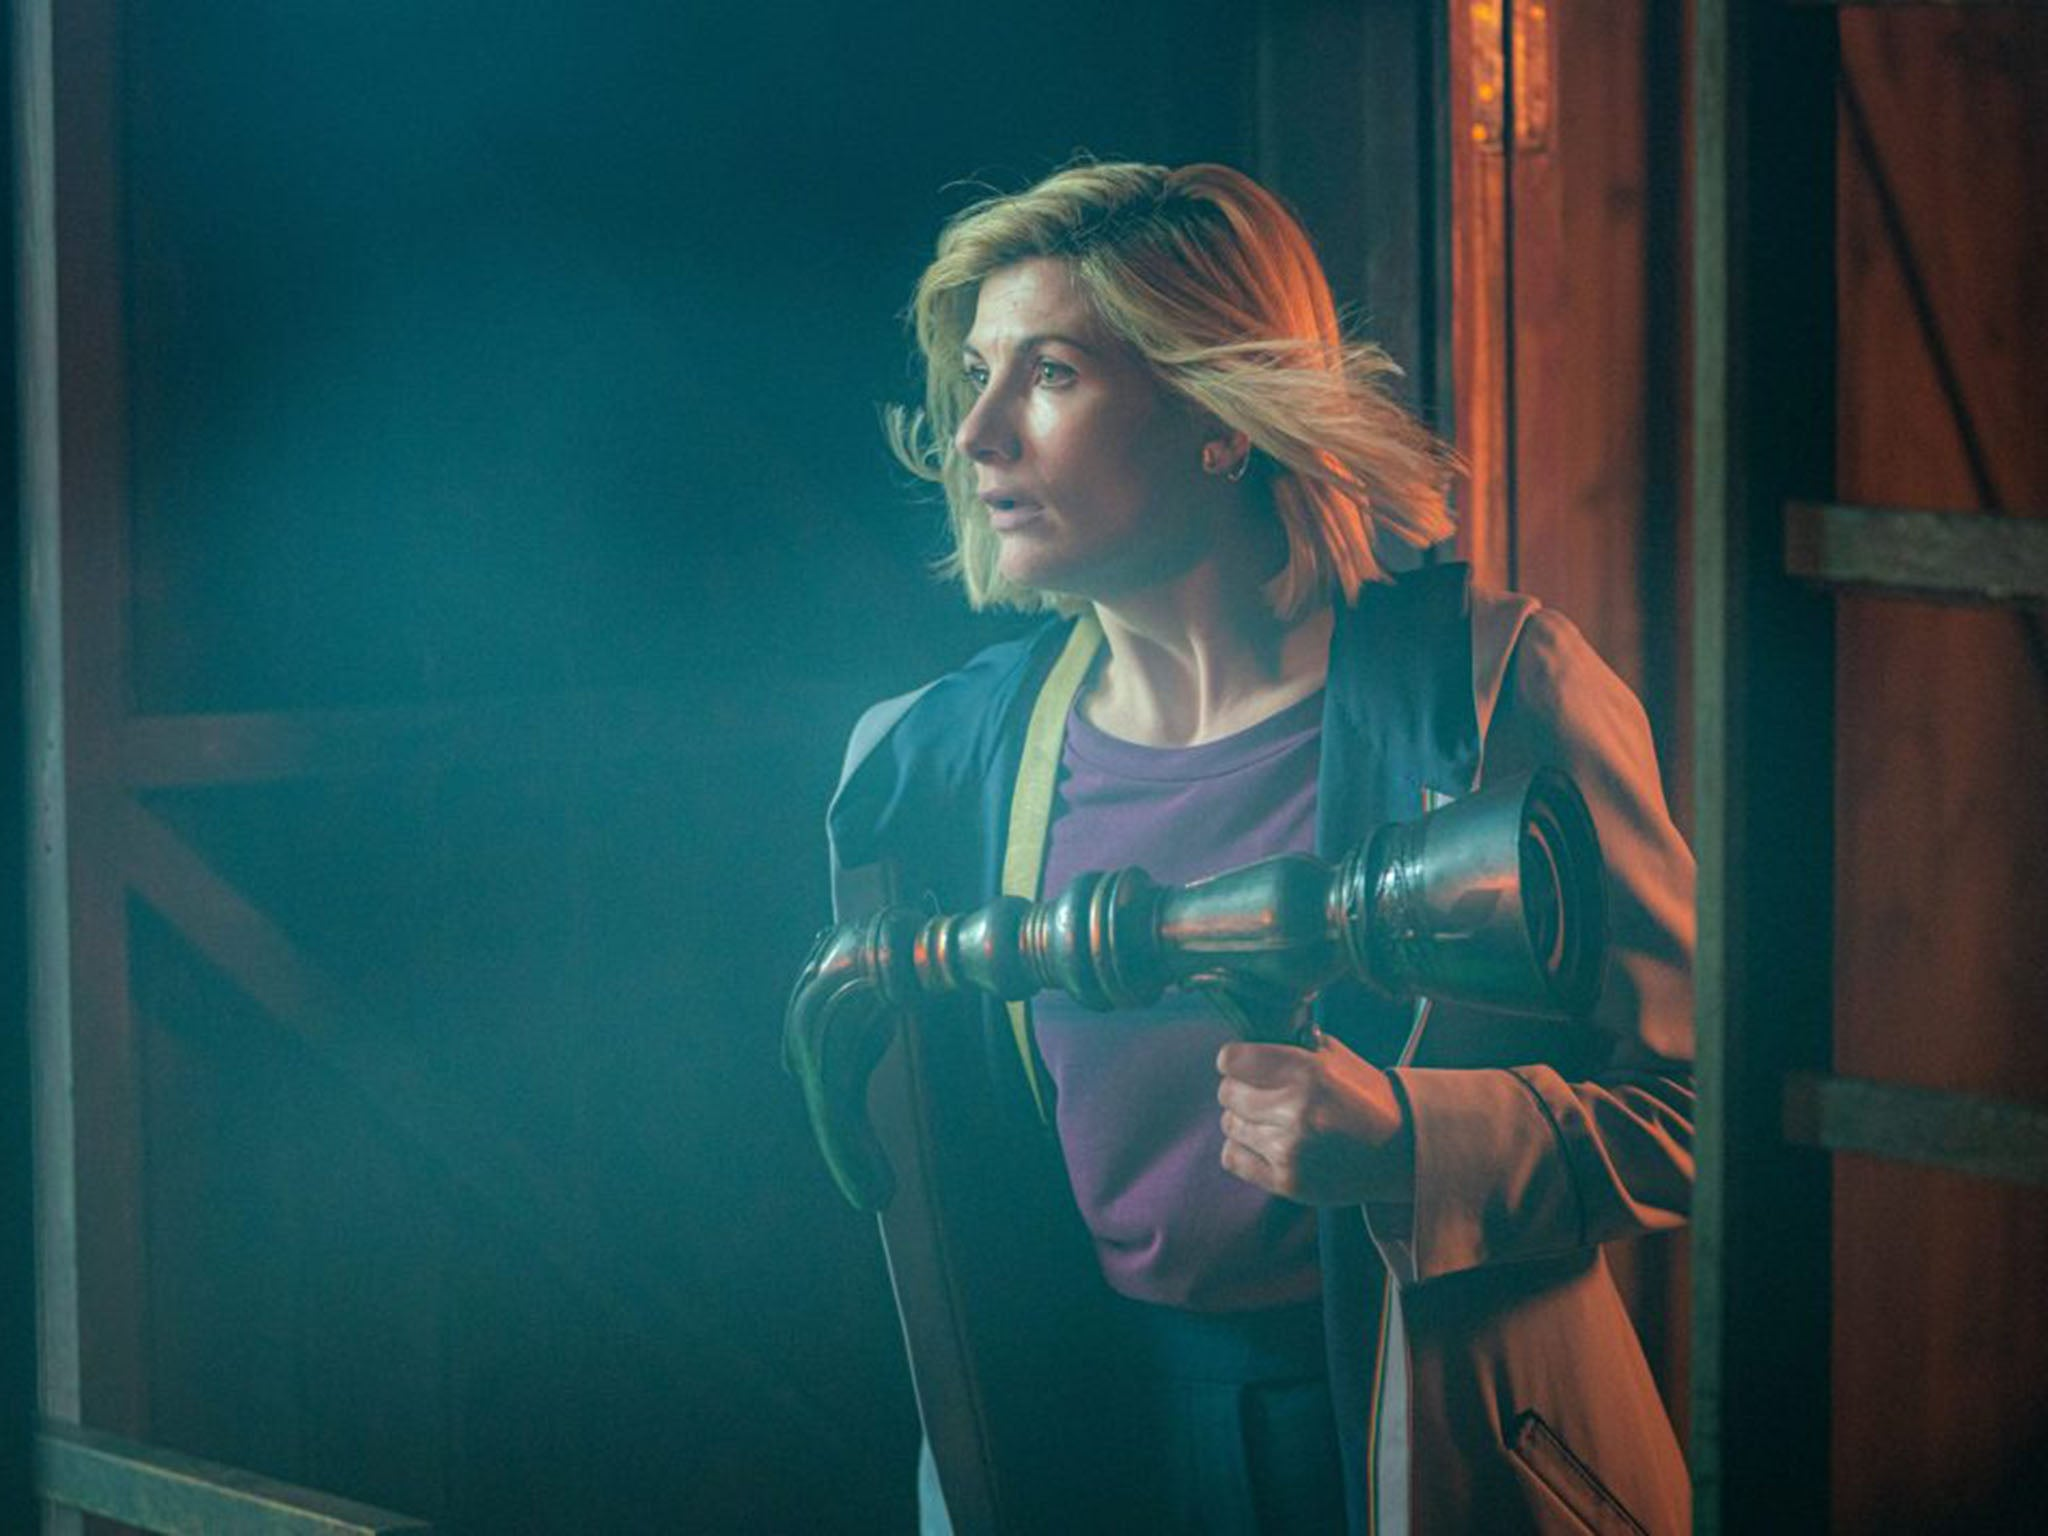 Doctor Who review, Fugitive of the Judoon: Latest episode echoes vintage Moffat, but surely fans are exhausted of plot twists by now?